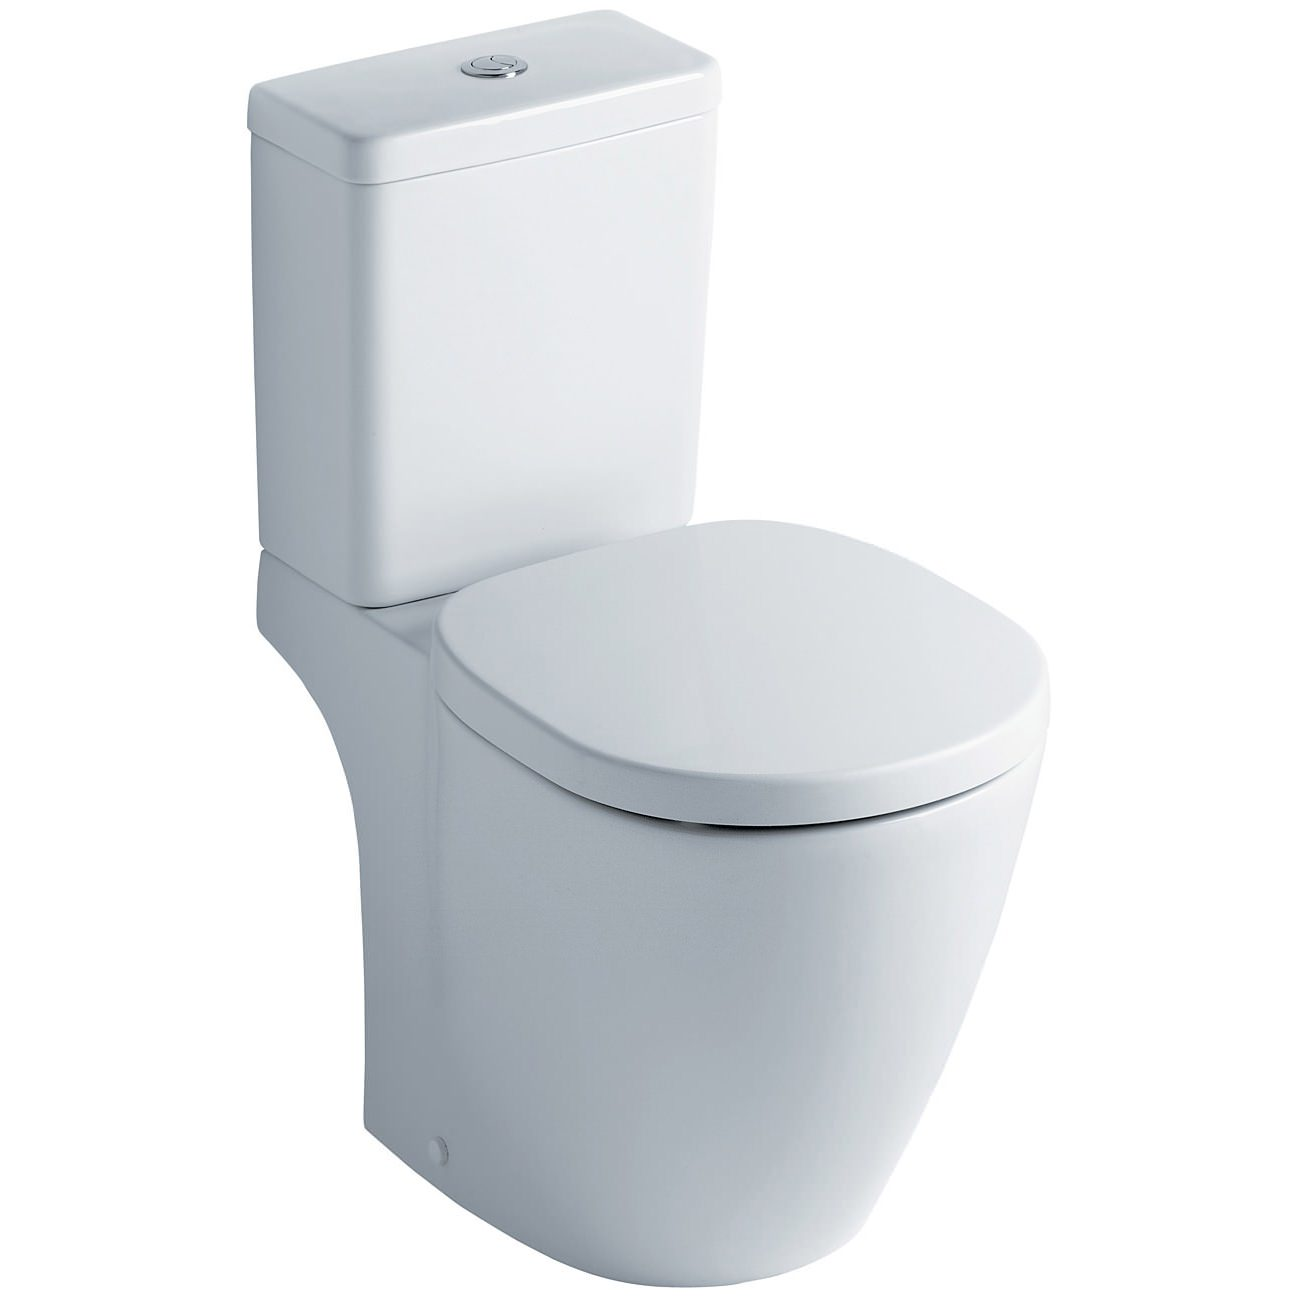 Wc Ideal Standard Ideal Standard Concept Cube Close Coupled Wc Pan And